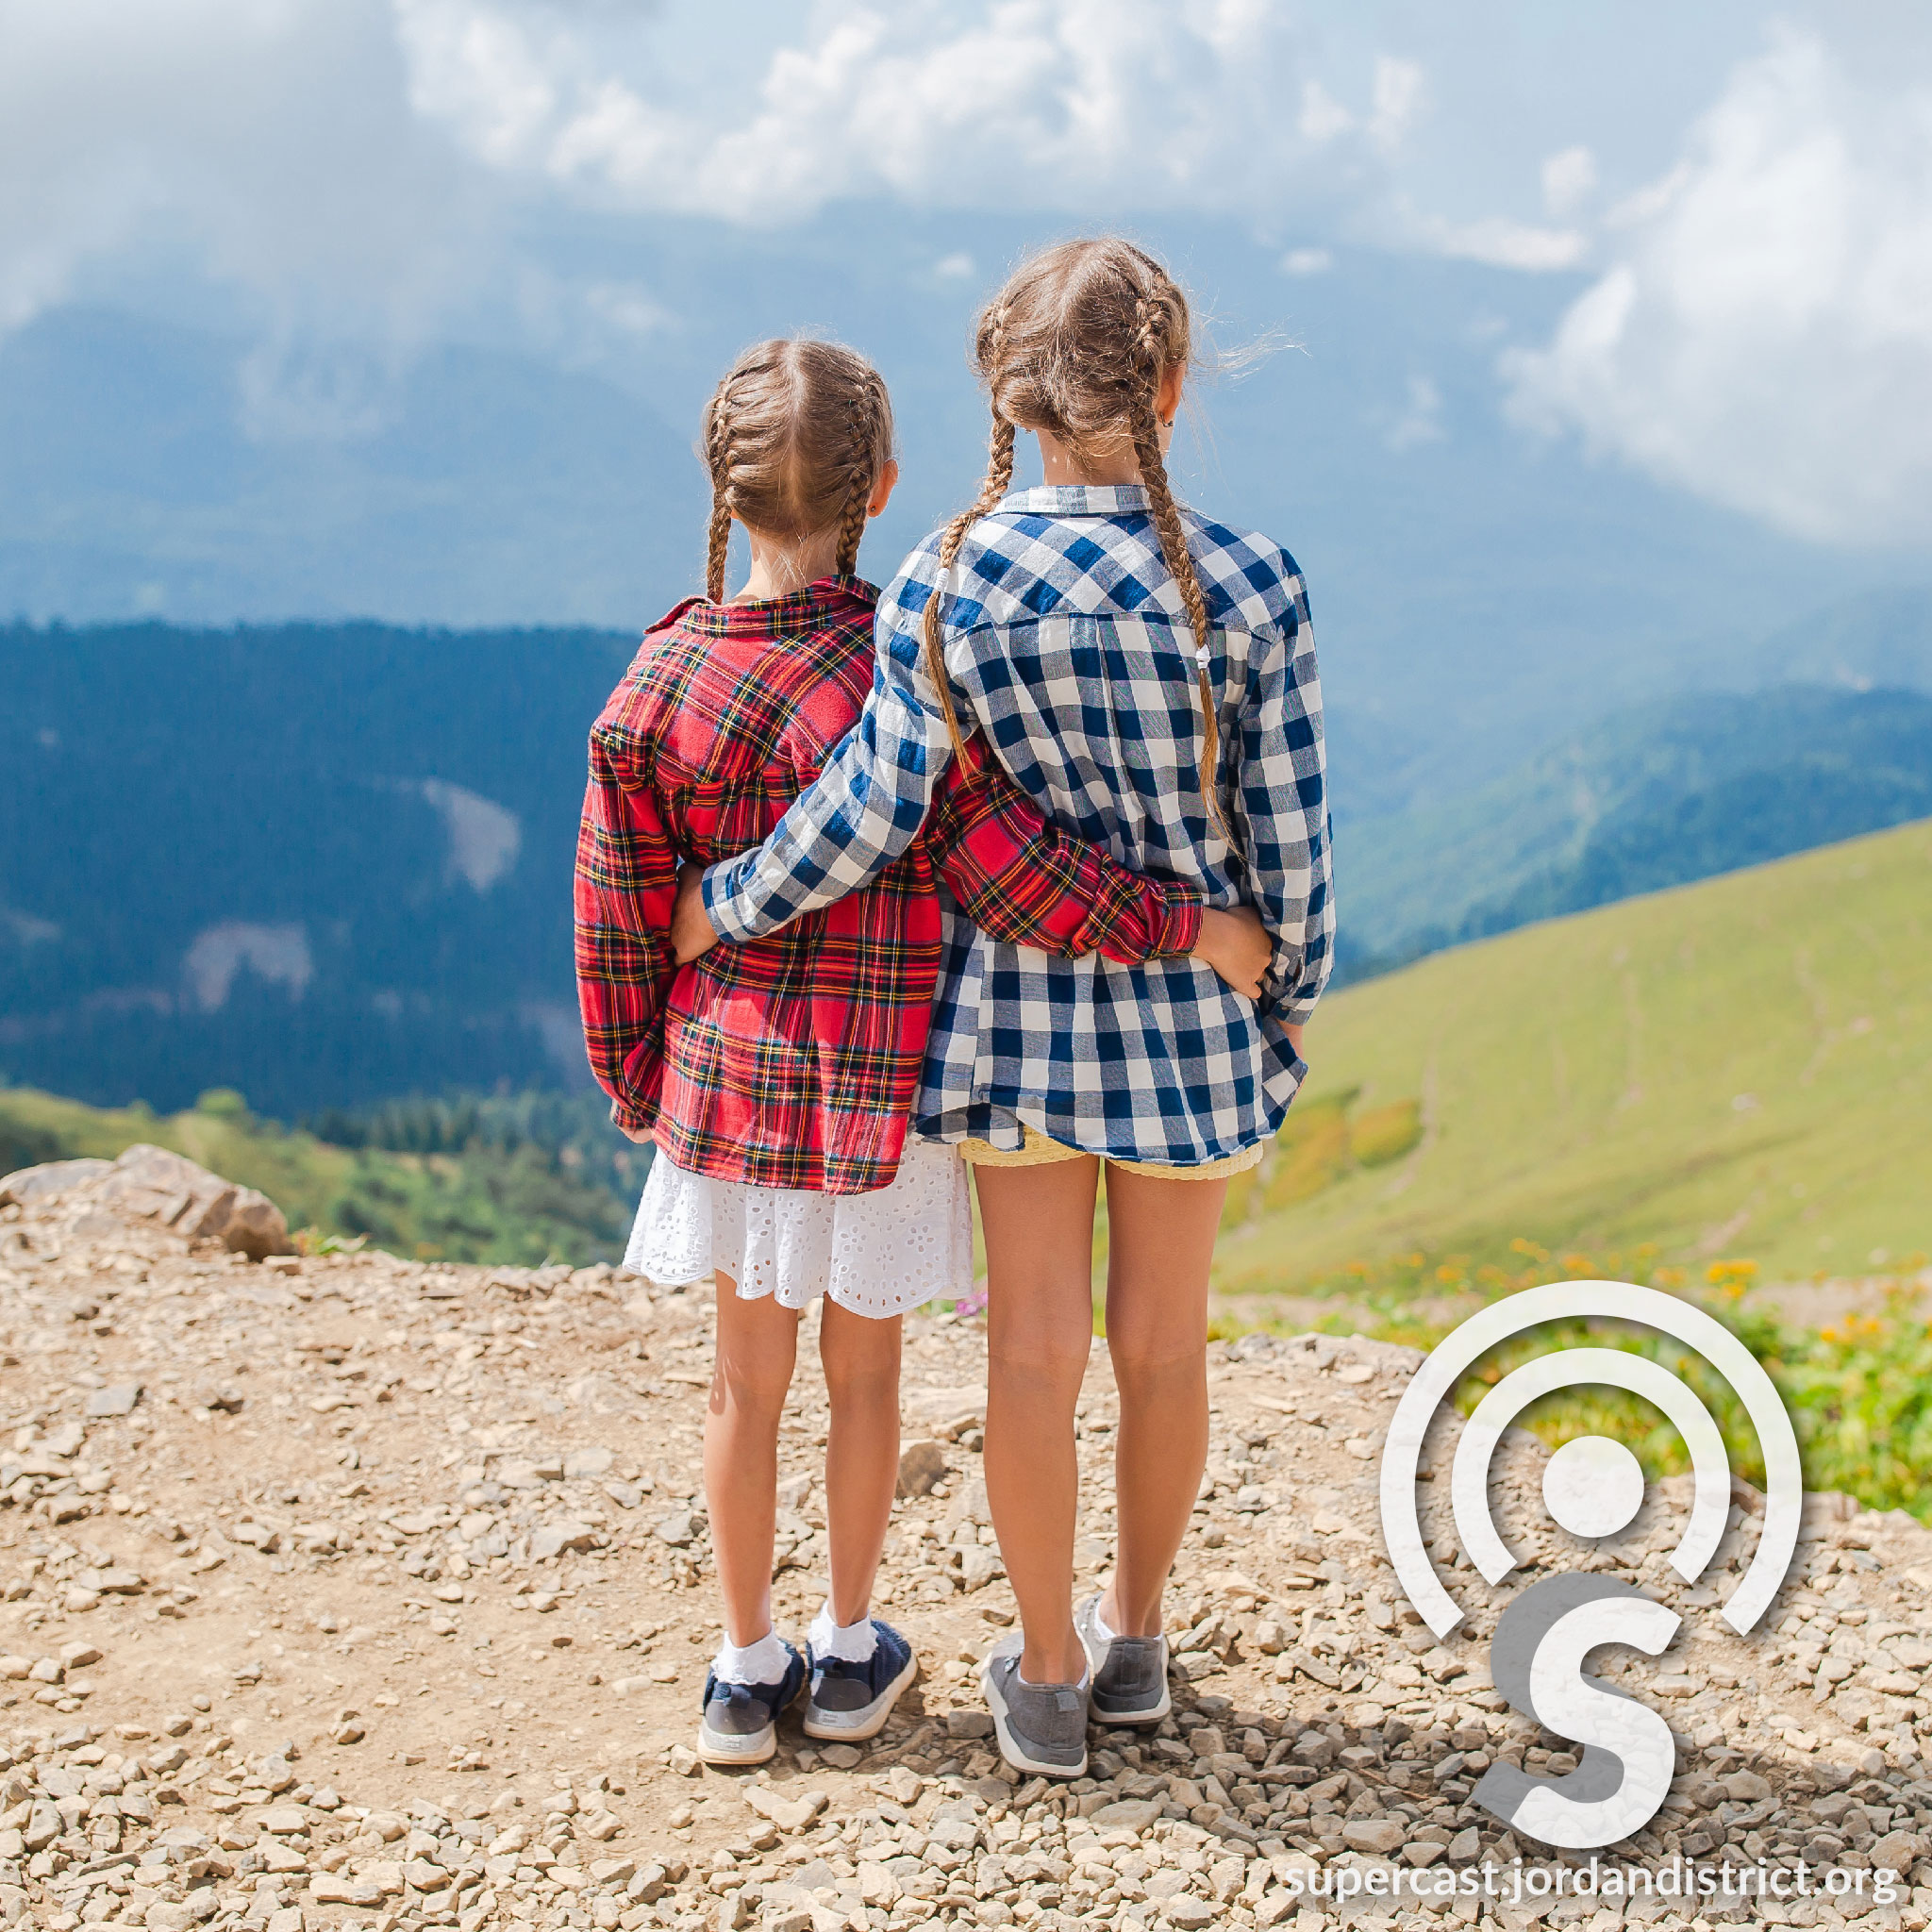 Two girls stare out into the mountain vista